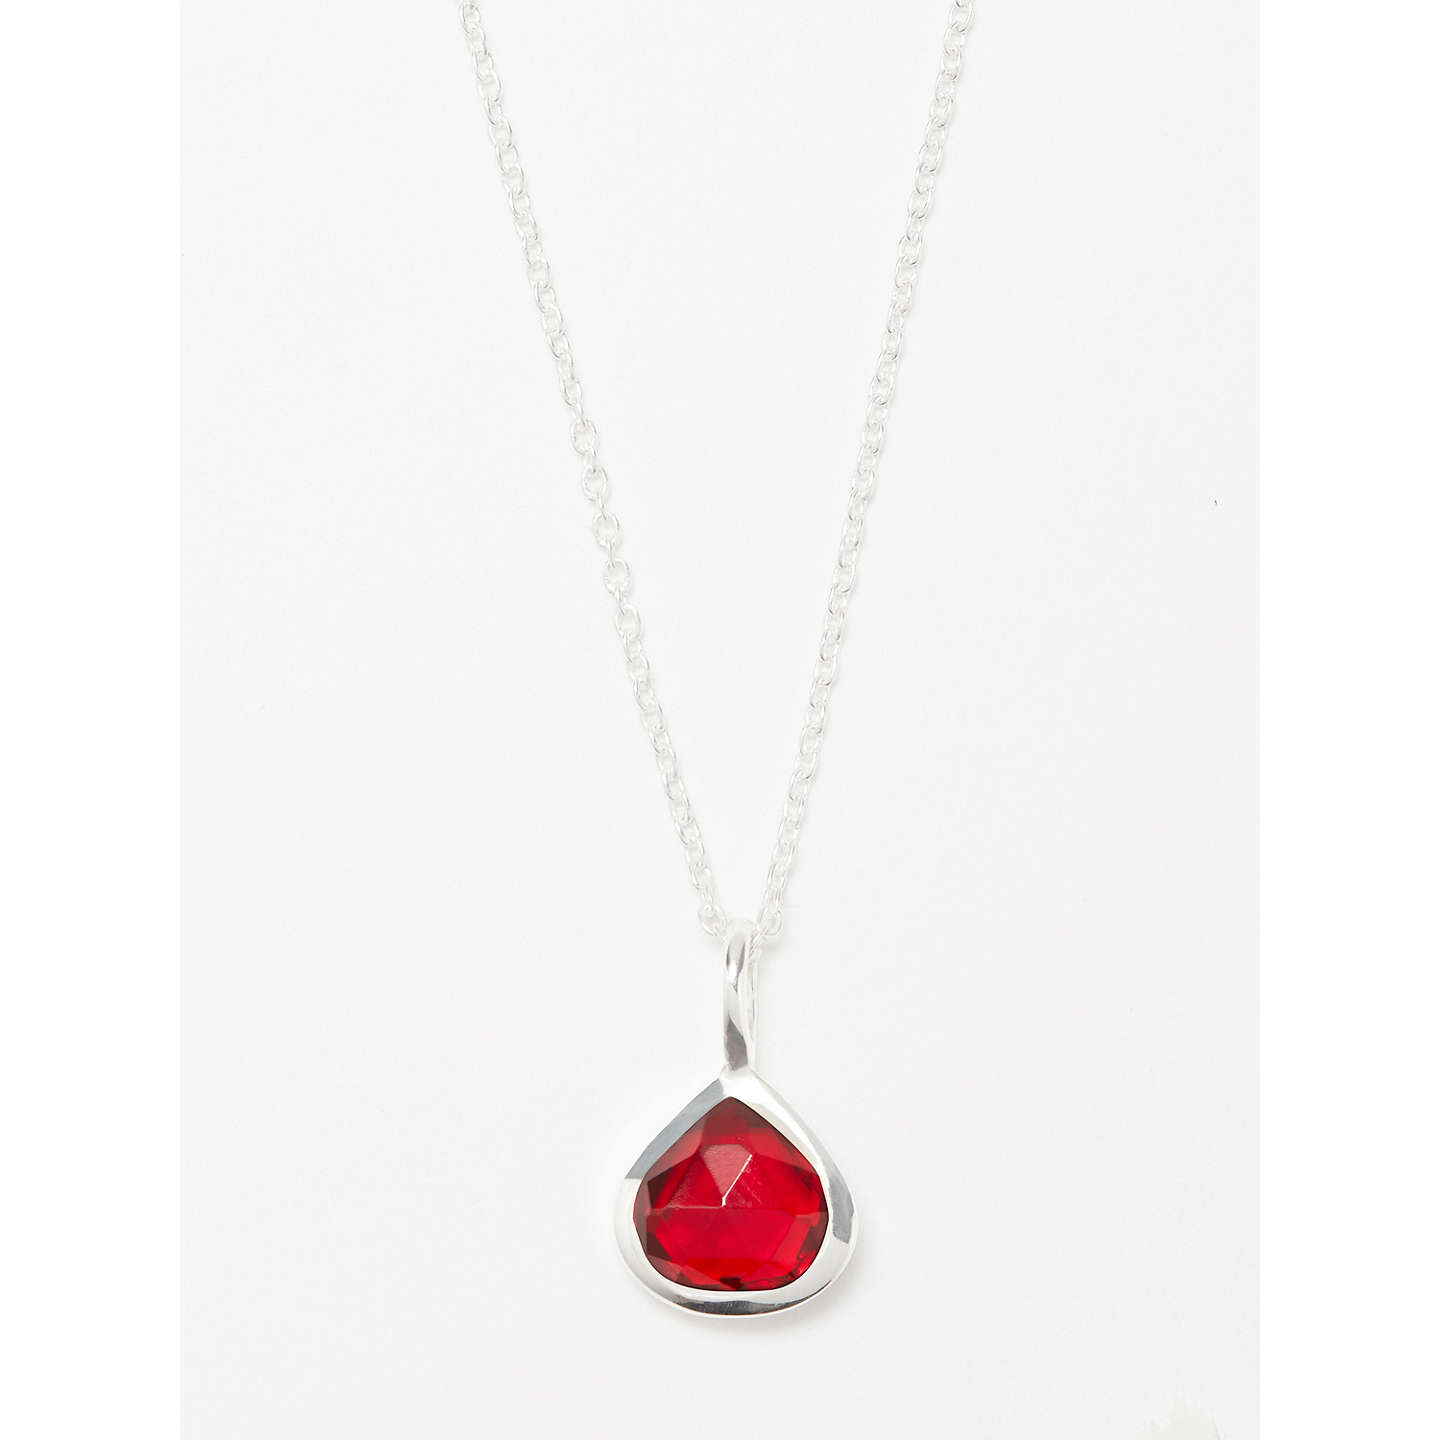 John lewis semi precious stone birthstone pendant necklace at john lewis buyjohn lewis semi precious stone birthstone pendant necklace january pink garnet online at johnlewis aloadofball Images